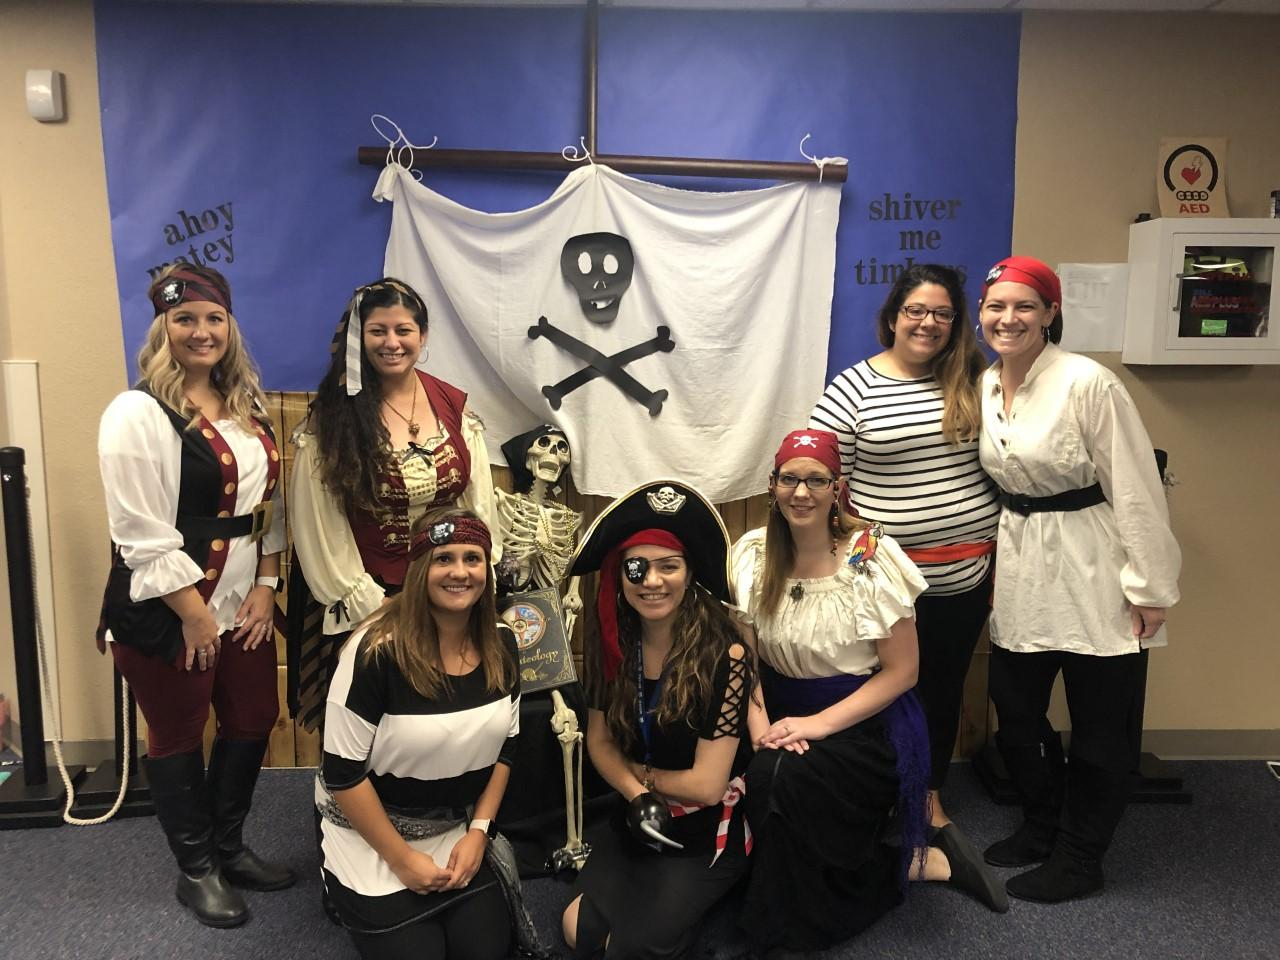 Liberty Elementary third grade teachers and students recently celebrated National Dress Like a Pirate Day.